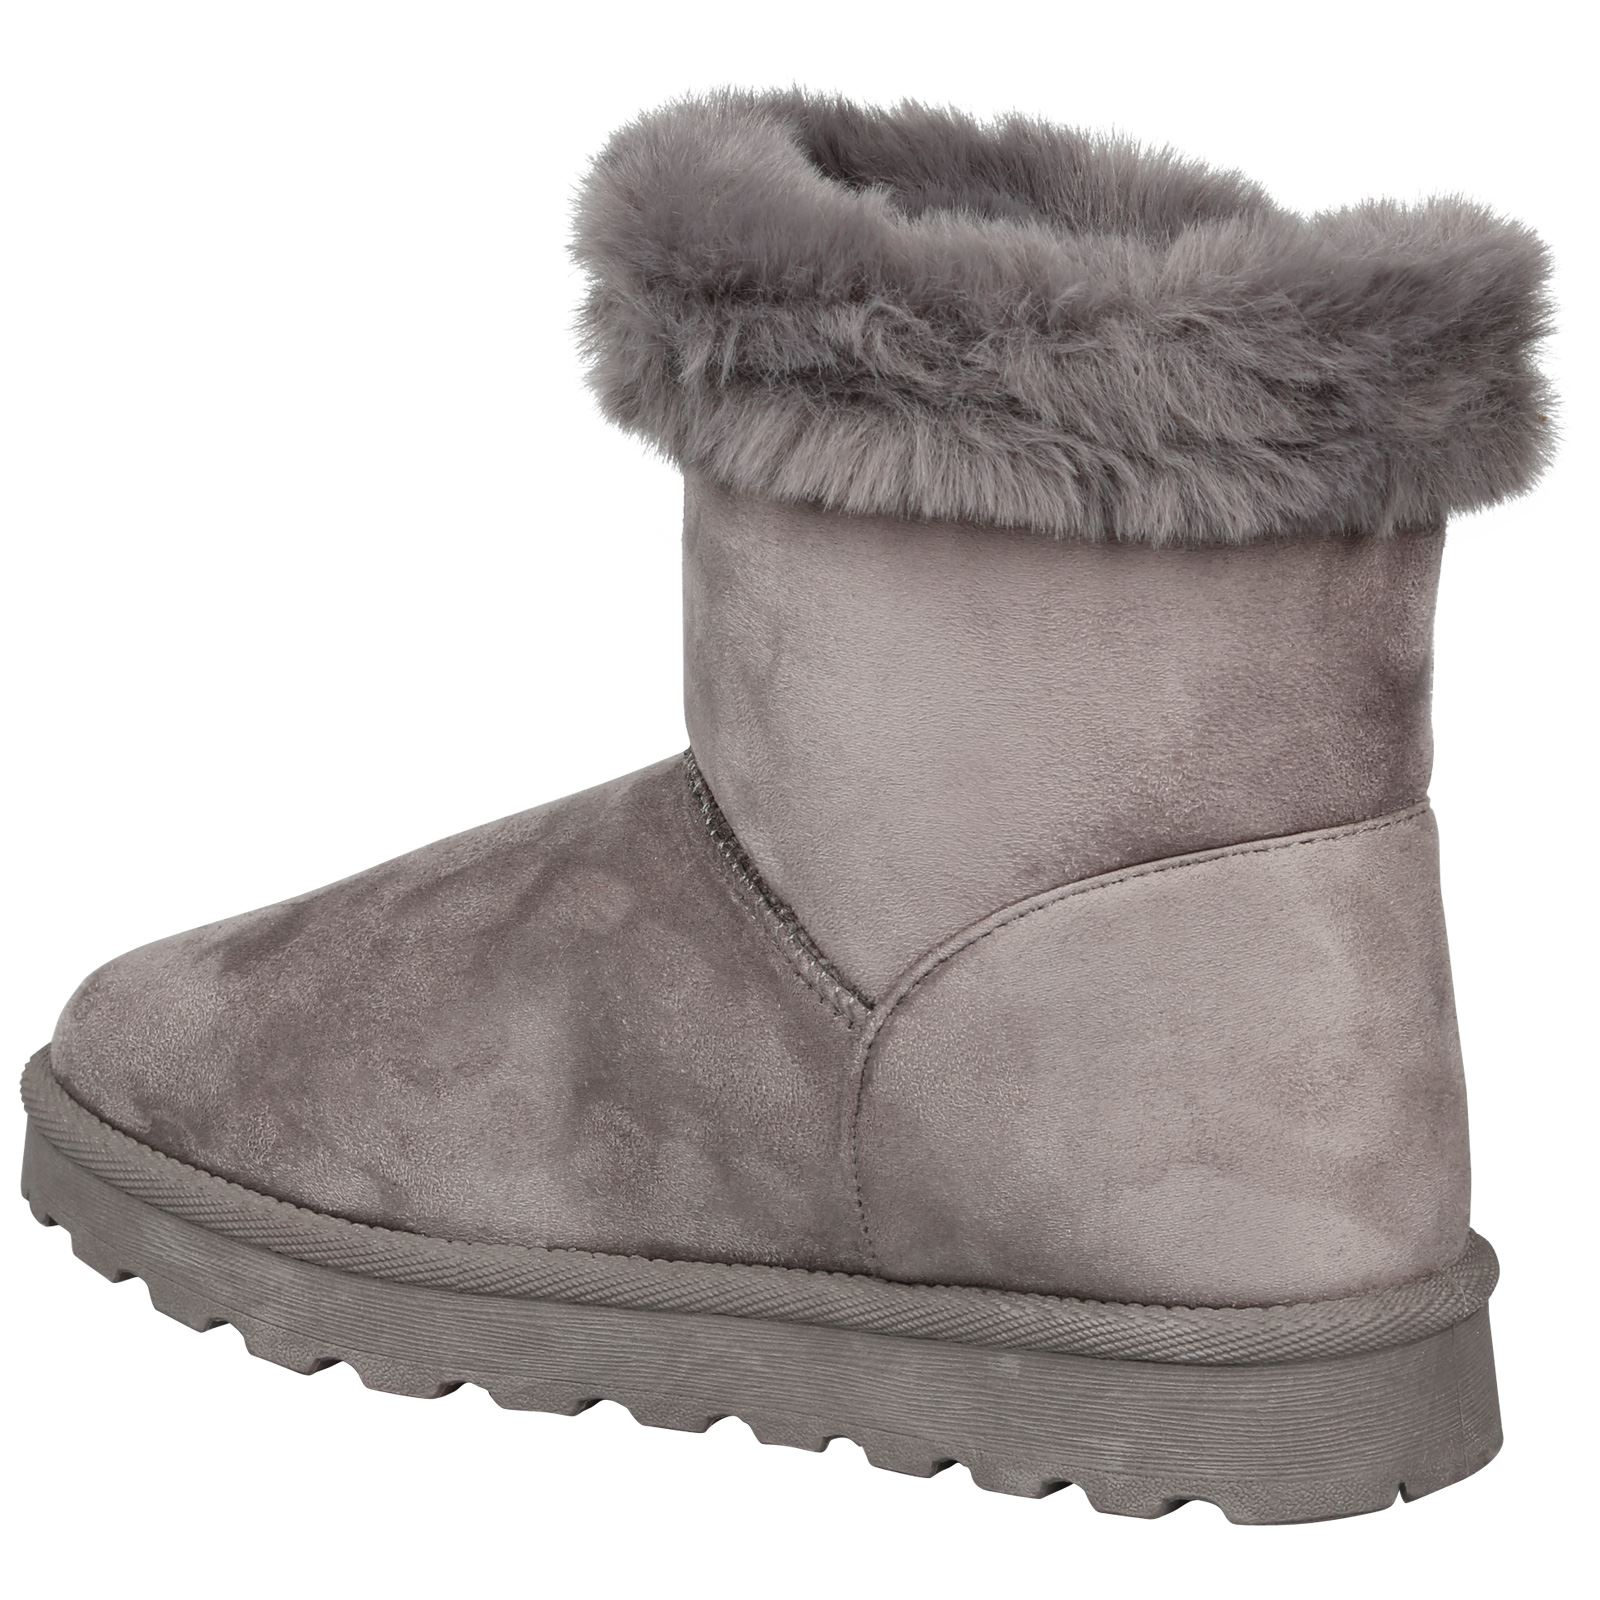 Eliana-Womens-Flatform-Fur-Lined-Flat-Snow-Ankle-Boots-Casual-Ladies-Size-Style thumbnail 13